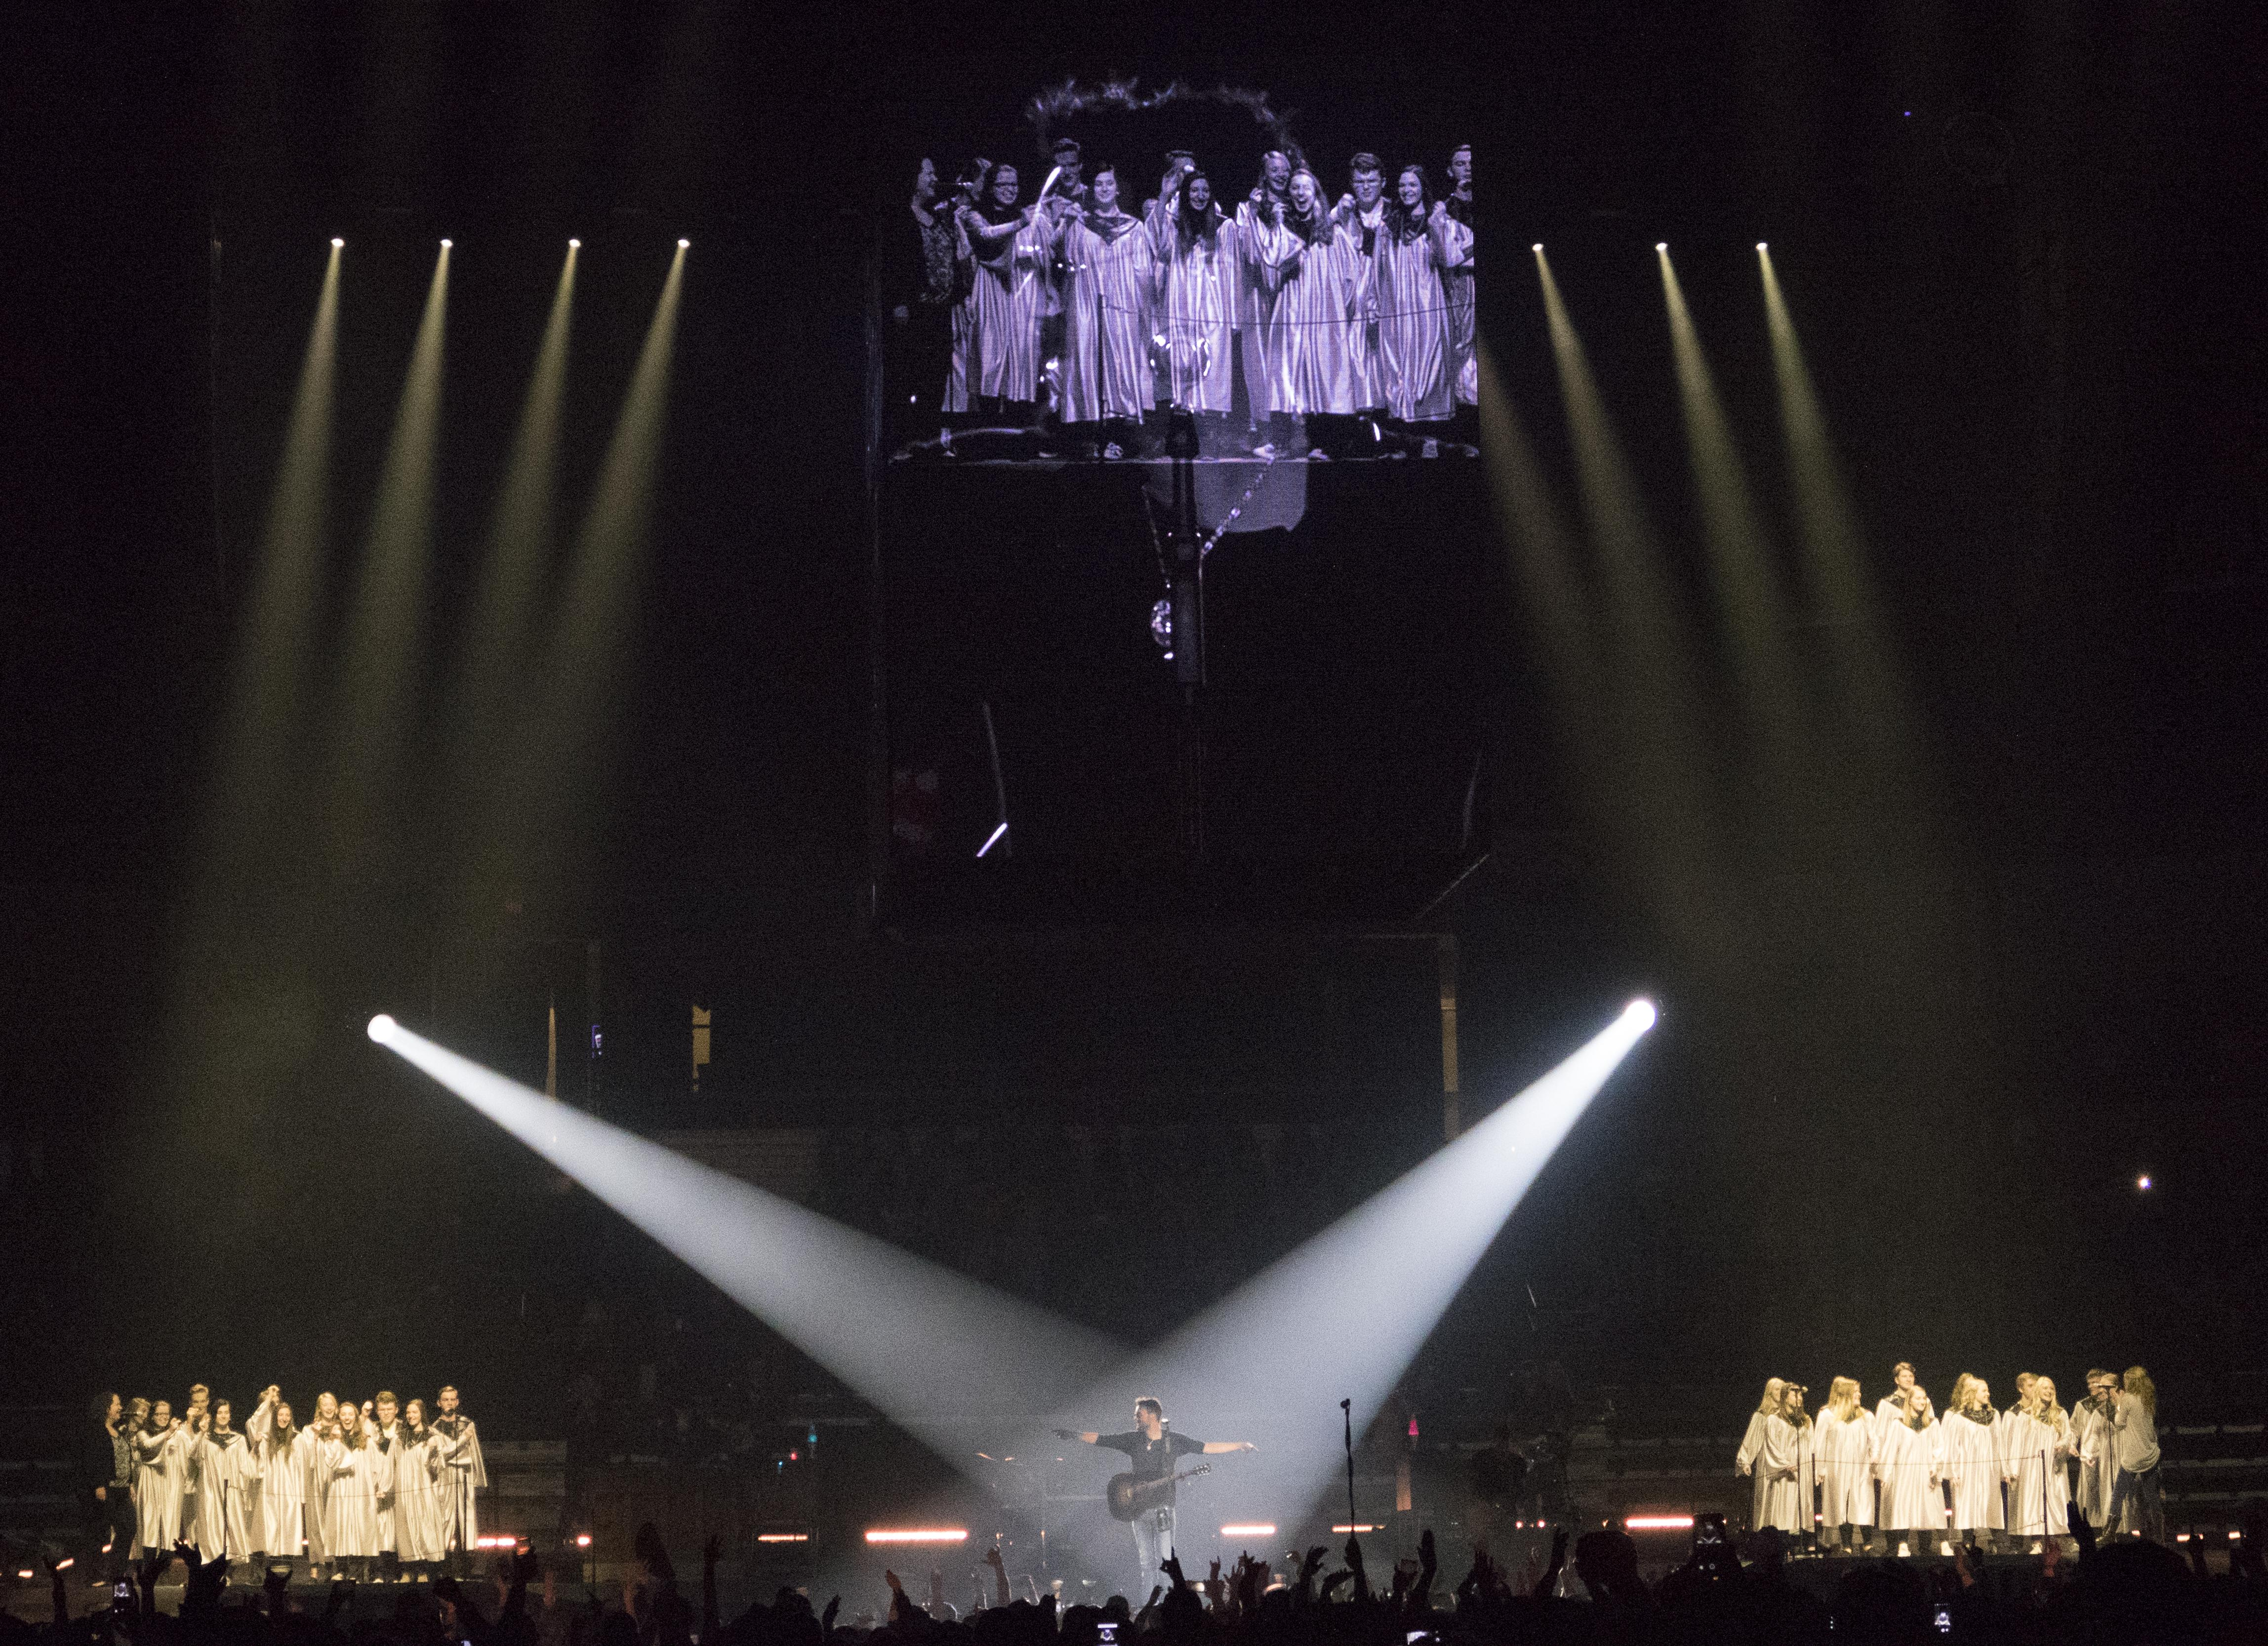 East Valley choir joined Eric Church on stage during Spokane concert | The Spokesman-Review & East Valley choir joined Eric Church on stage during Spokane concert ...